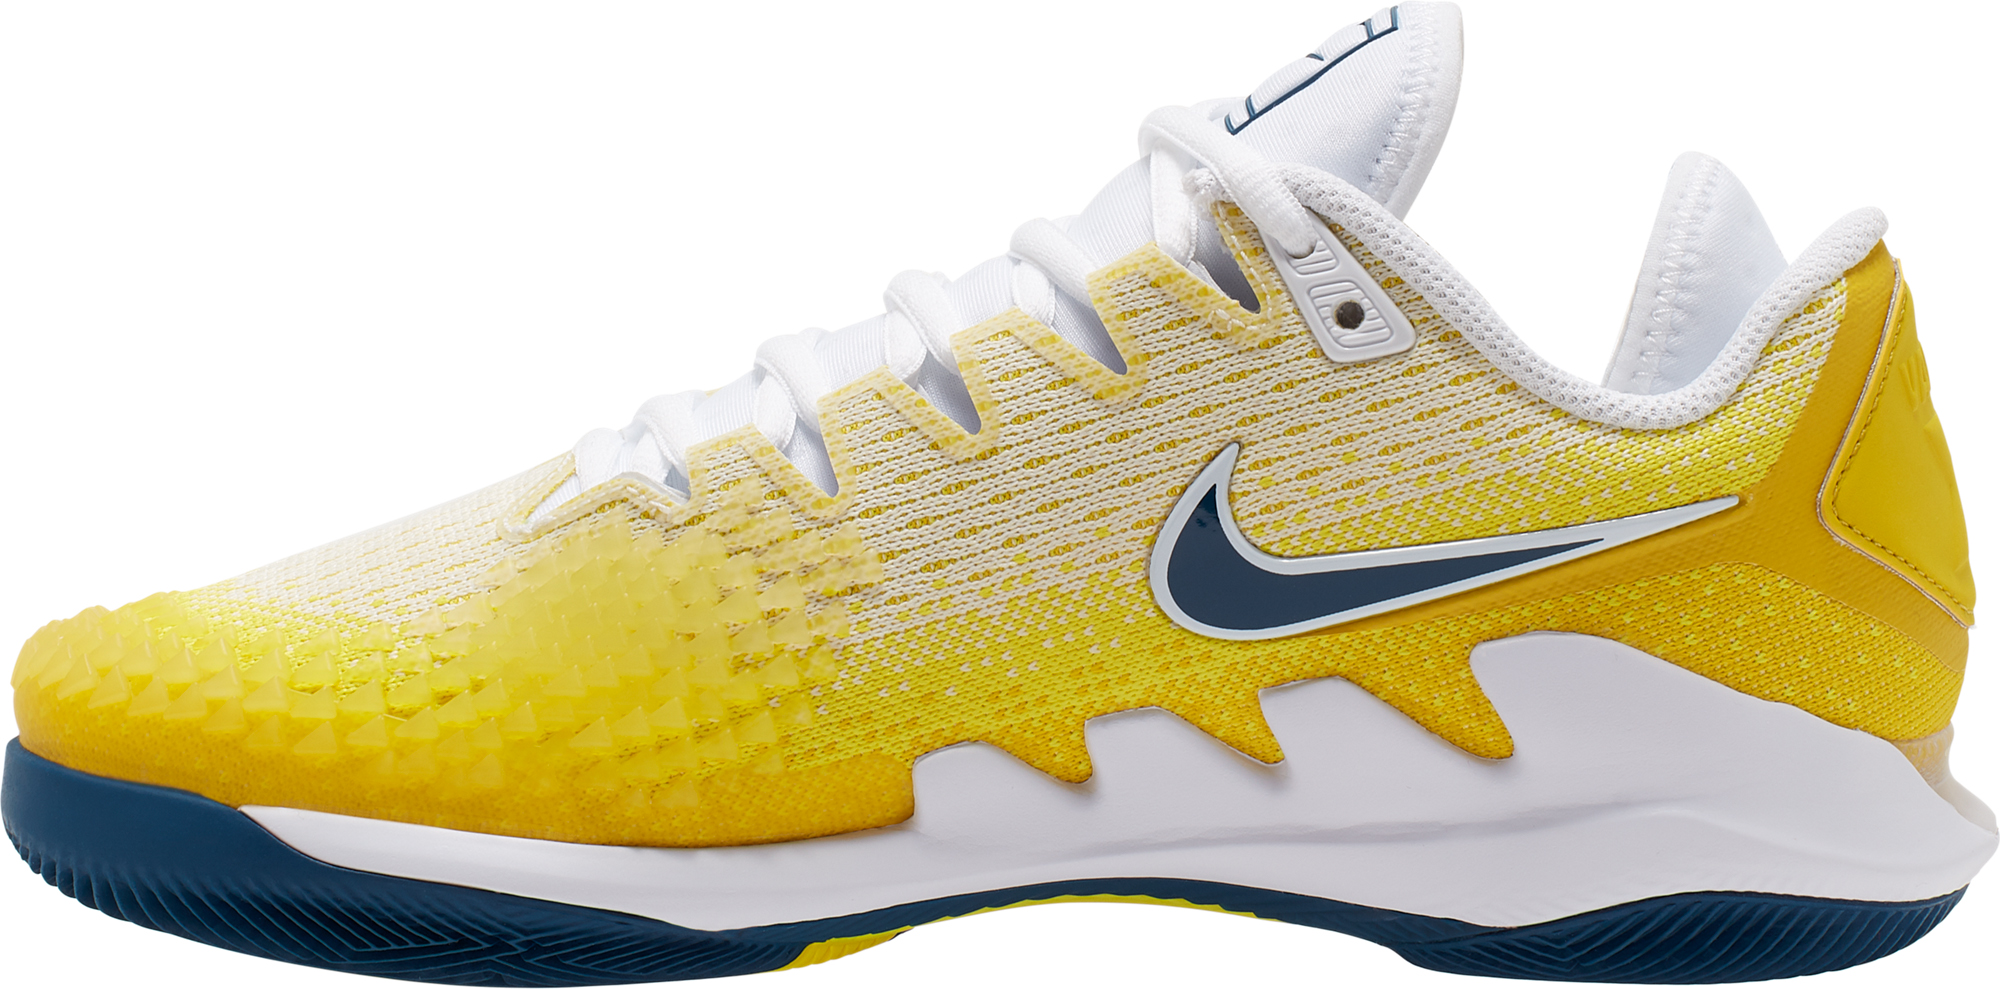 Nike Кроссовки женские Nike Air Zoom Vapor X Knit, размер 39.5 nike кроссовки женские nike zoom cage 3 размер 41